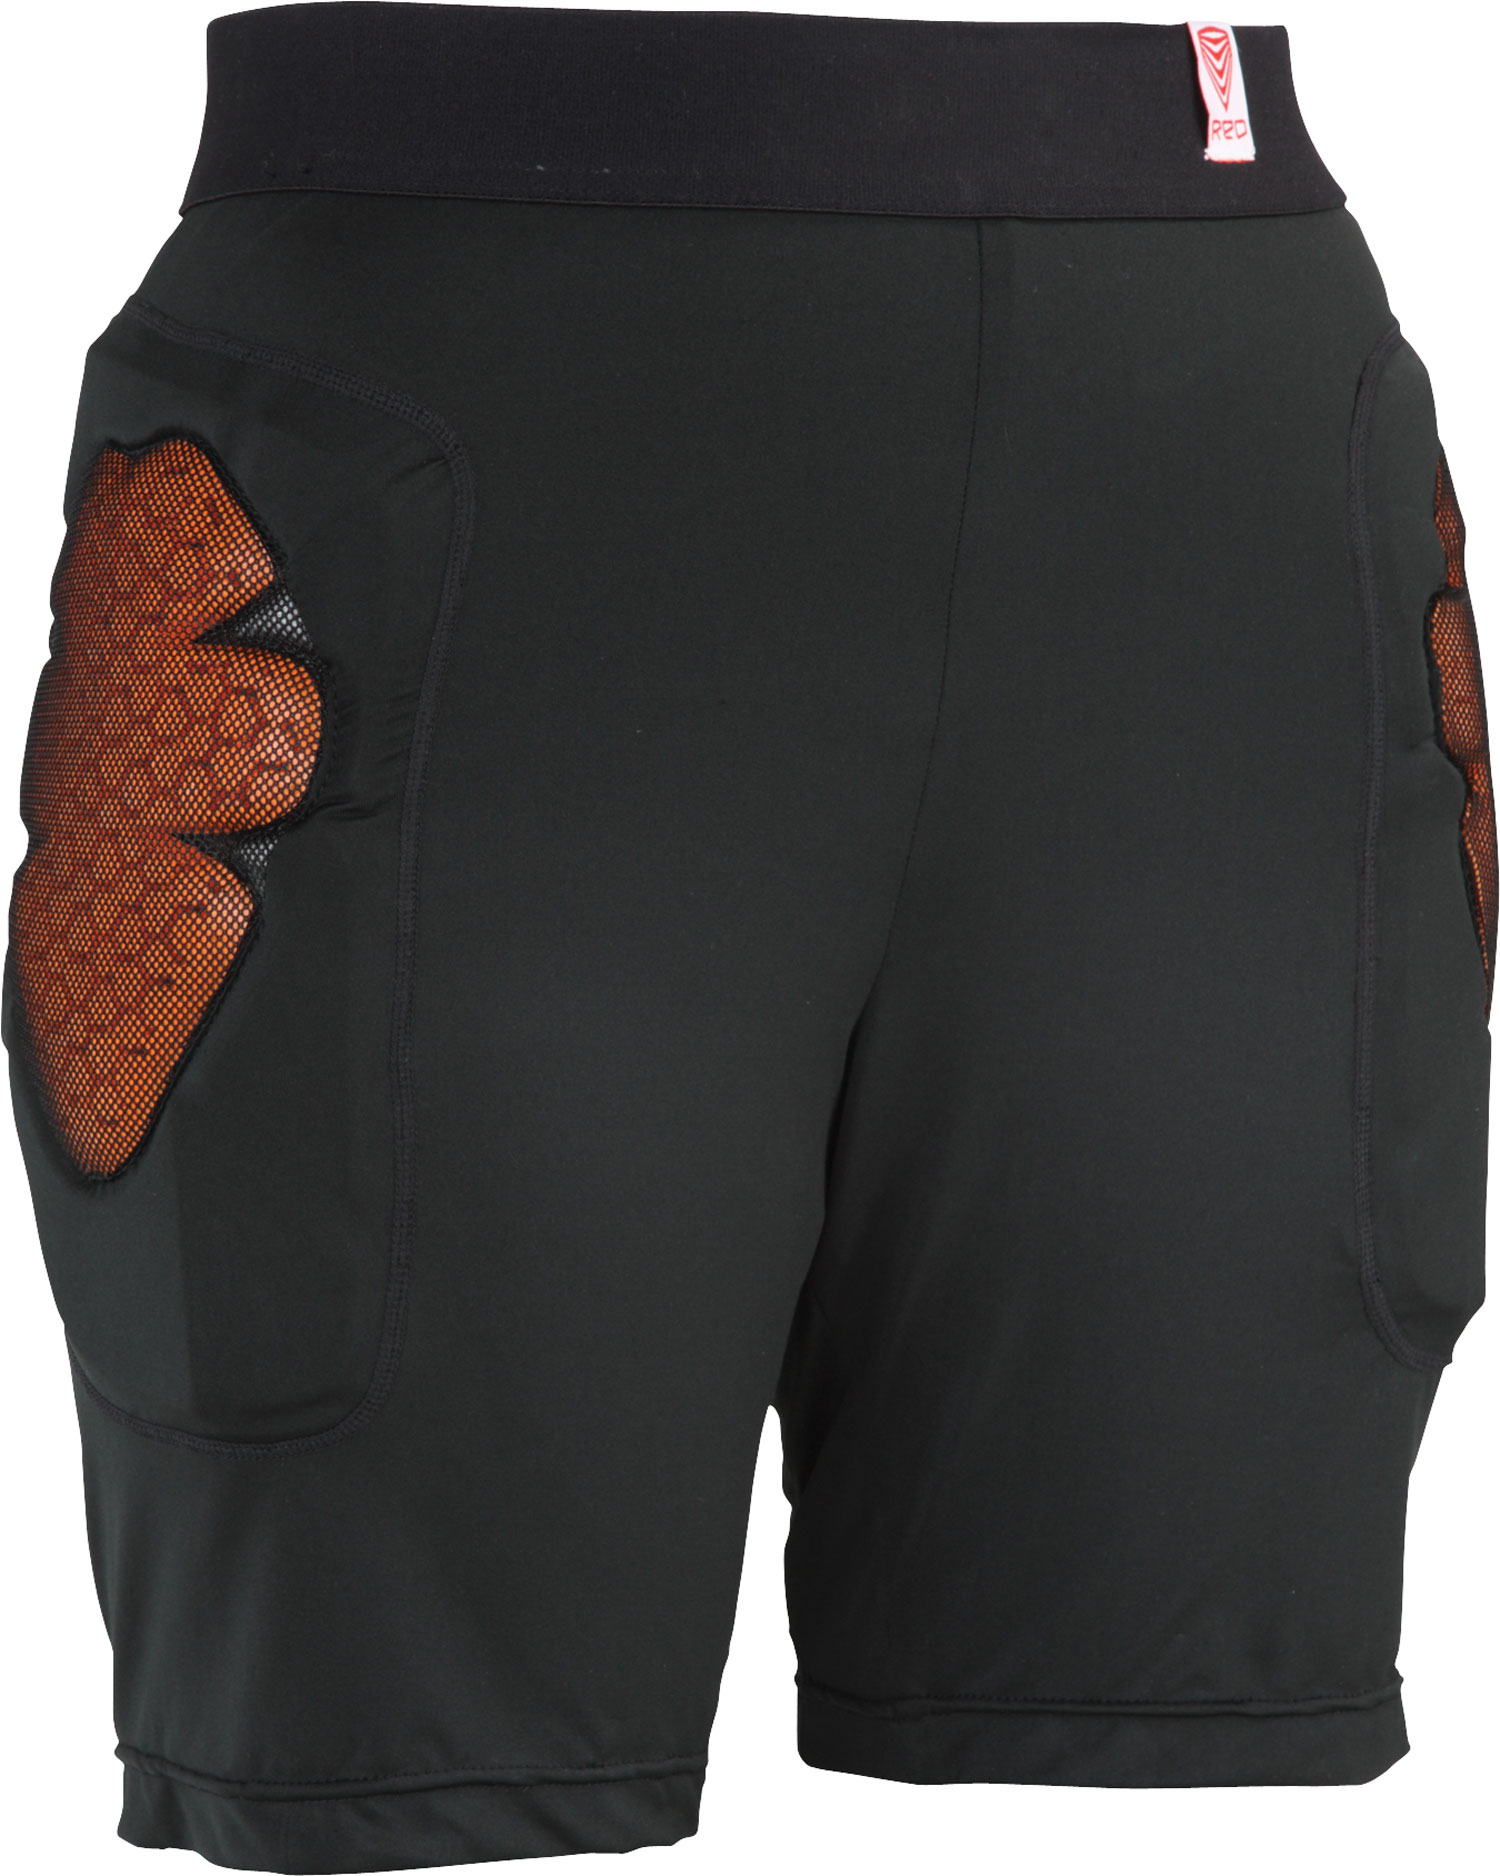 Red Base Layer Short Padded Shorts Black - $44.95